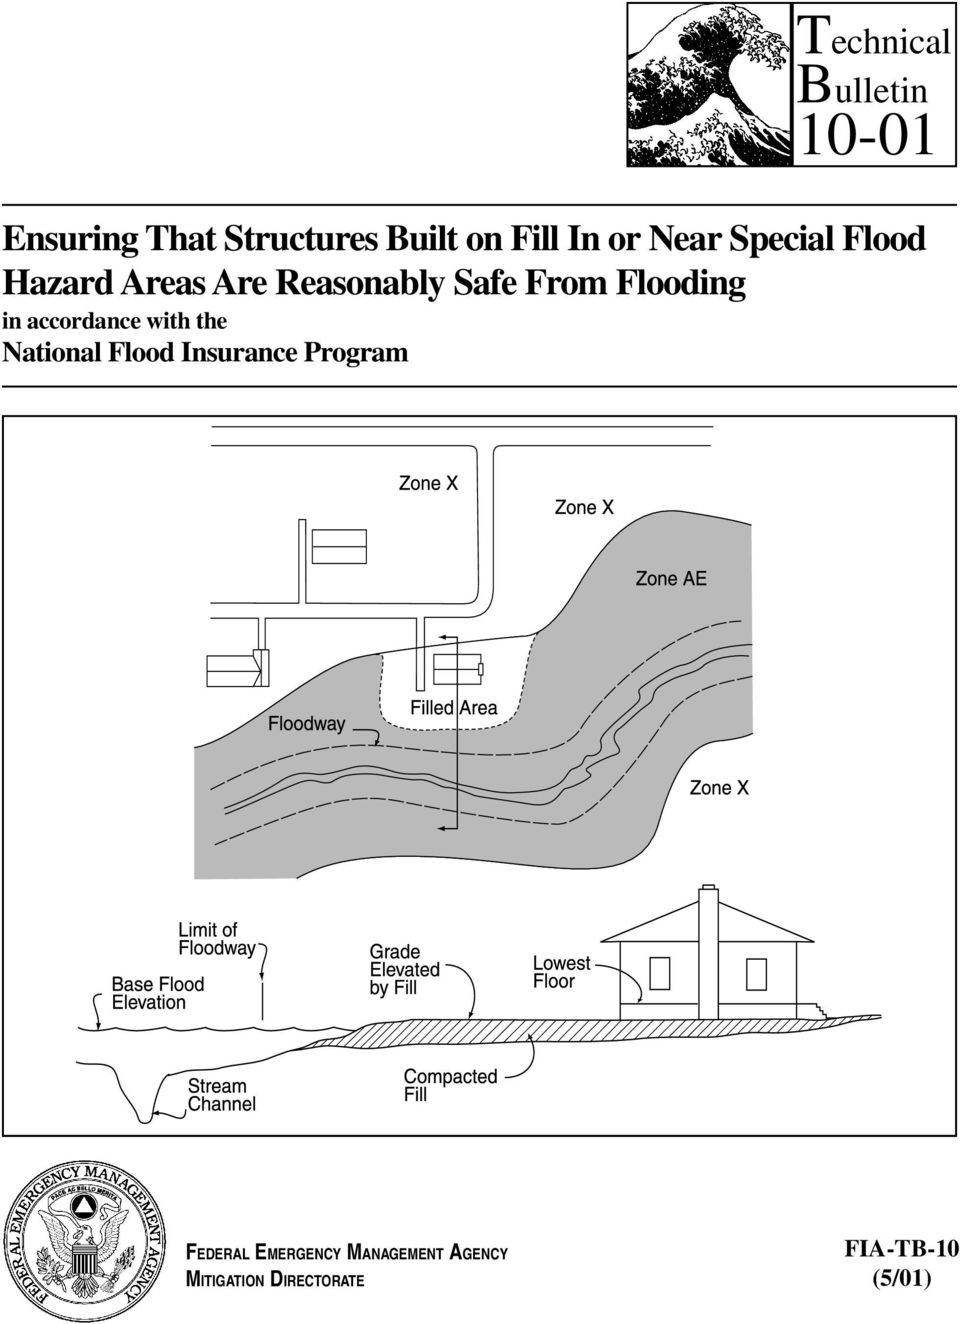 Flooding in accordance with the National Flood Insurance Program